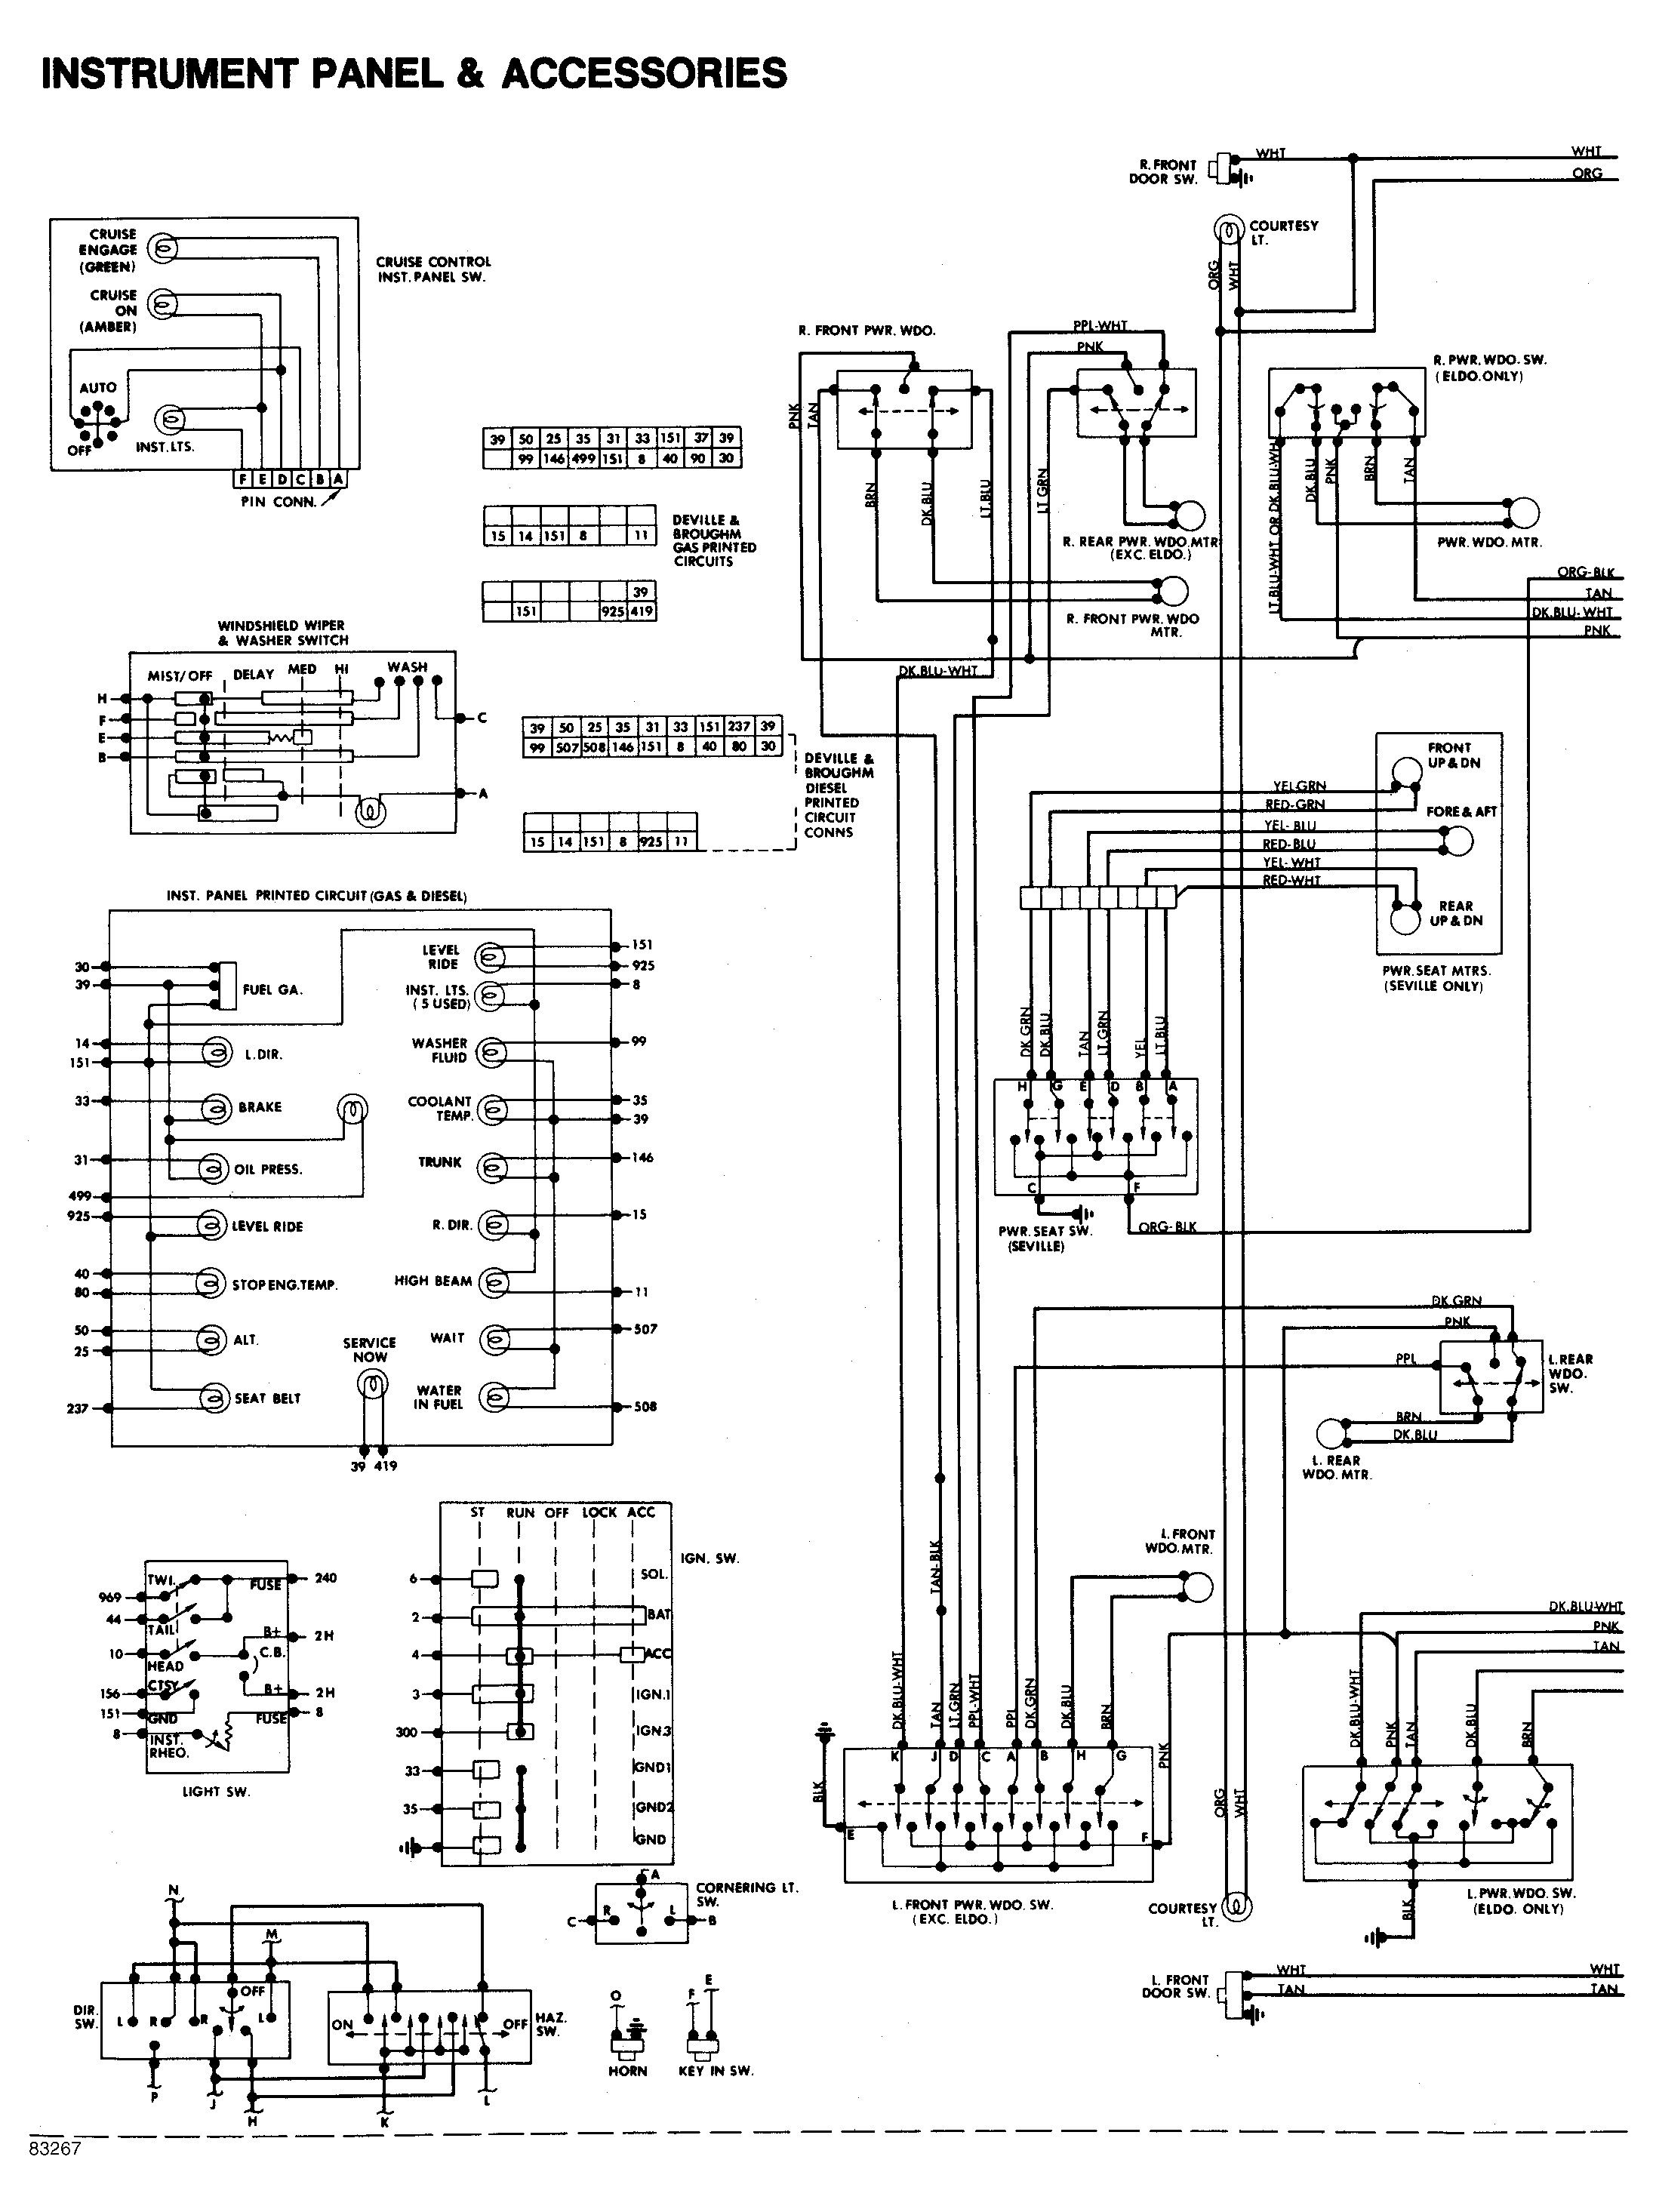 daewoo alternator wiring diagram - block diagram reduction matlab list data  schematic  santuariomadredelbuonconsiglio.it